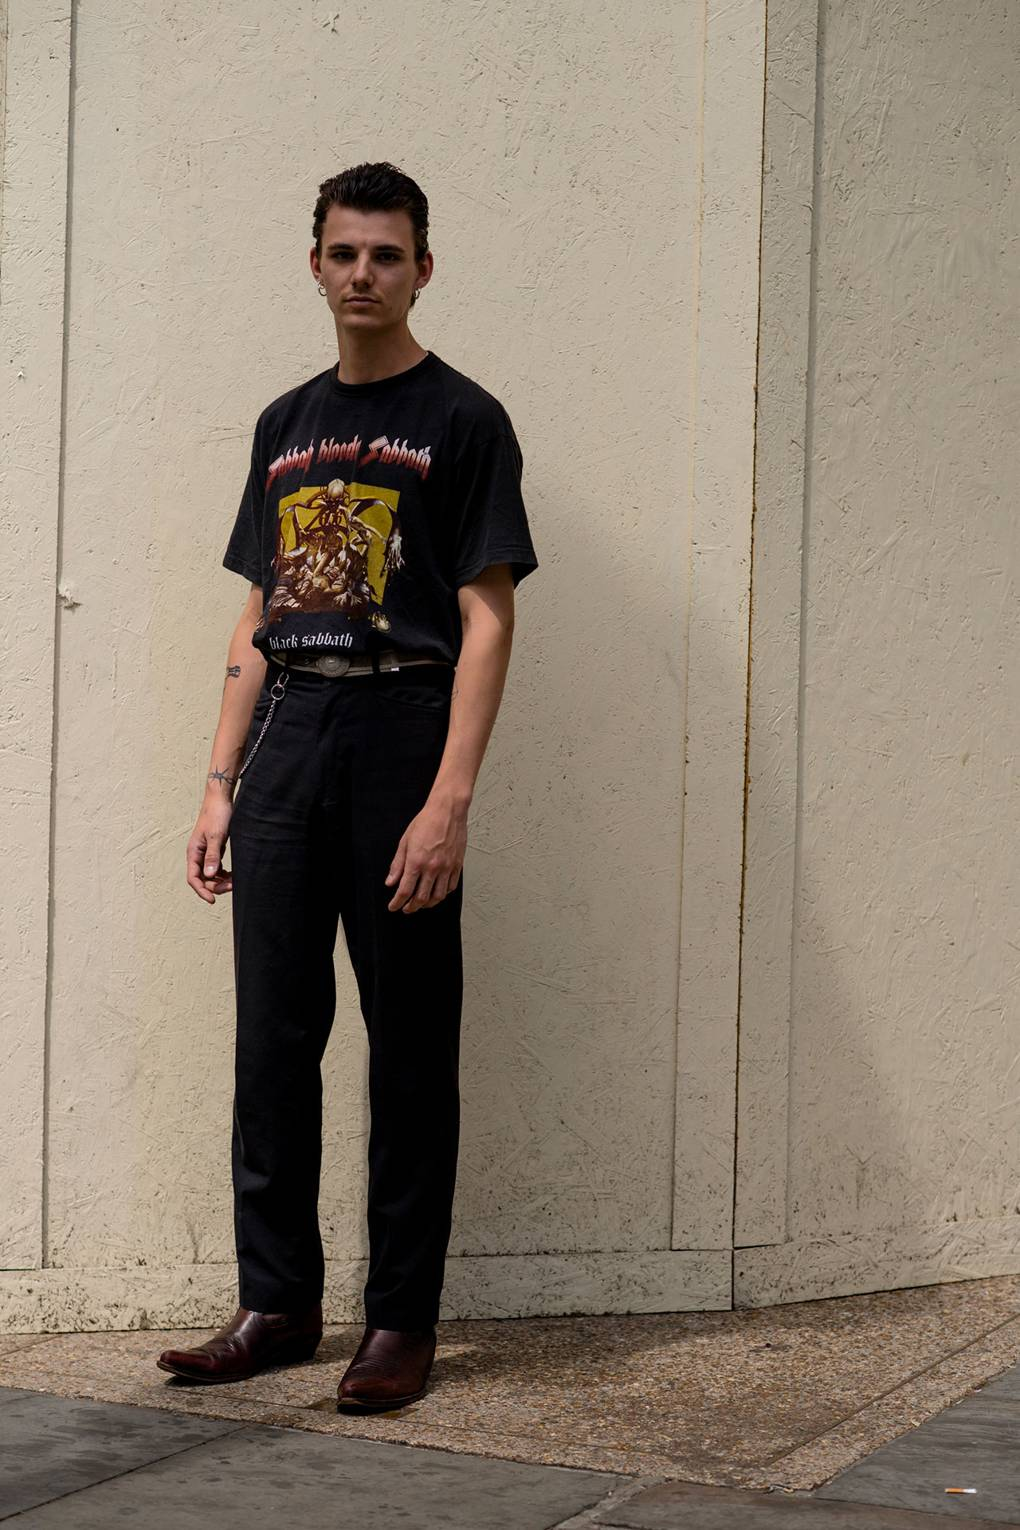 London Fashion Week Men's S/S 2019 Man in Black Graphic T-Shirt and Double Monks